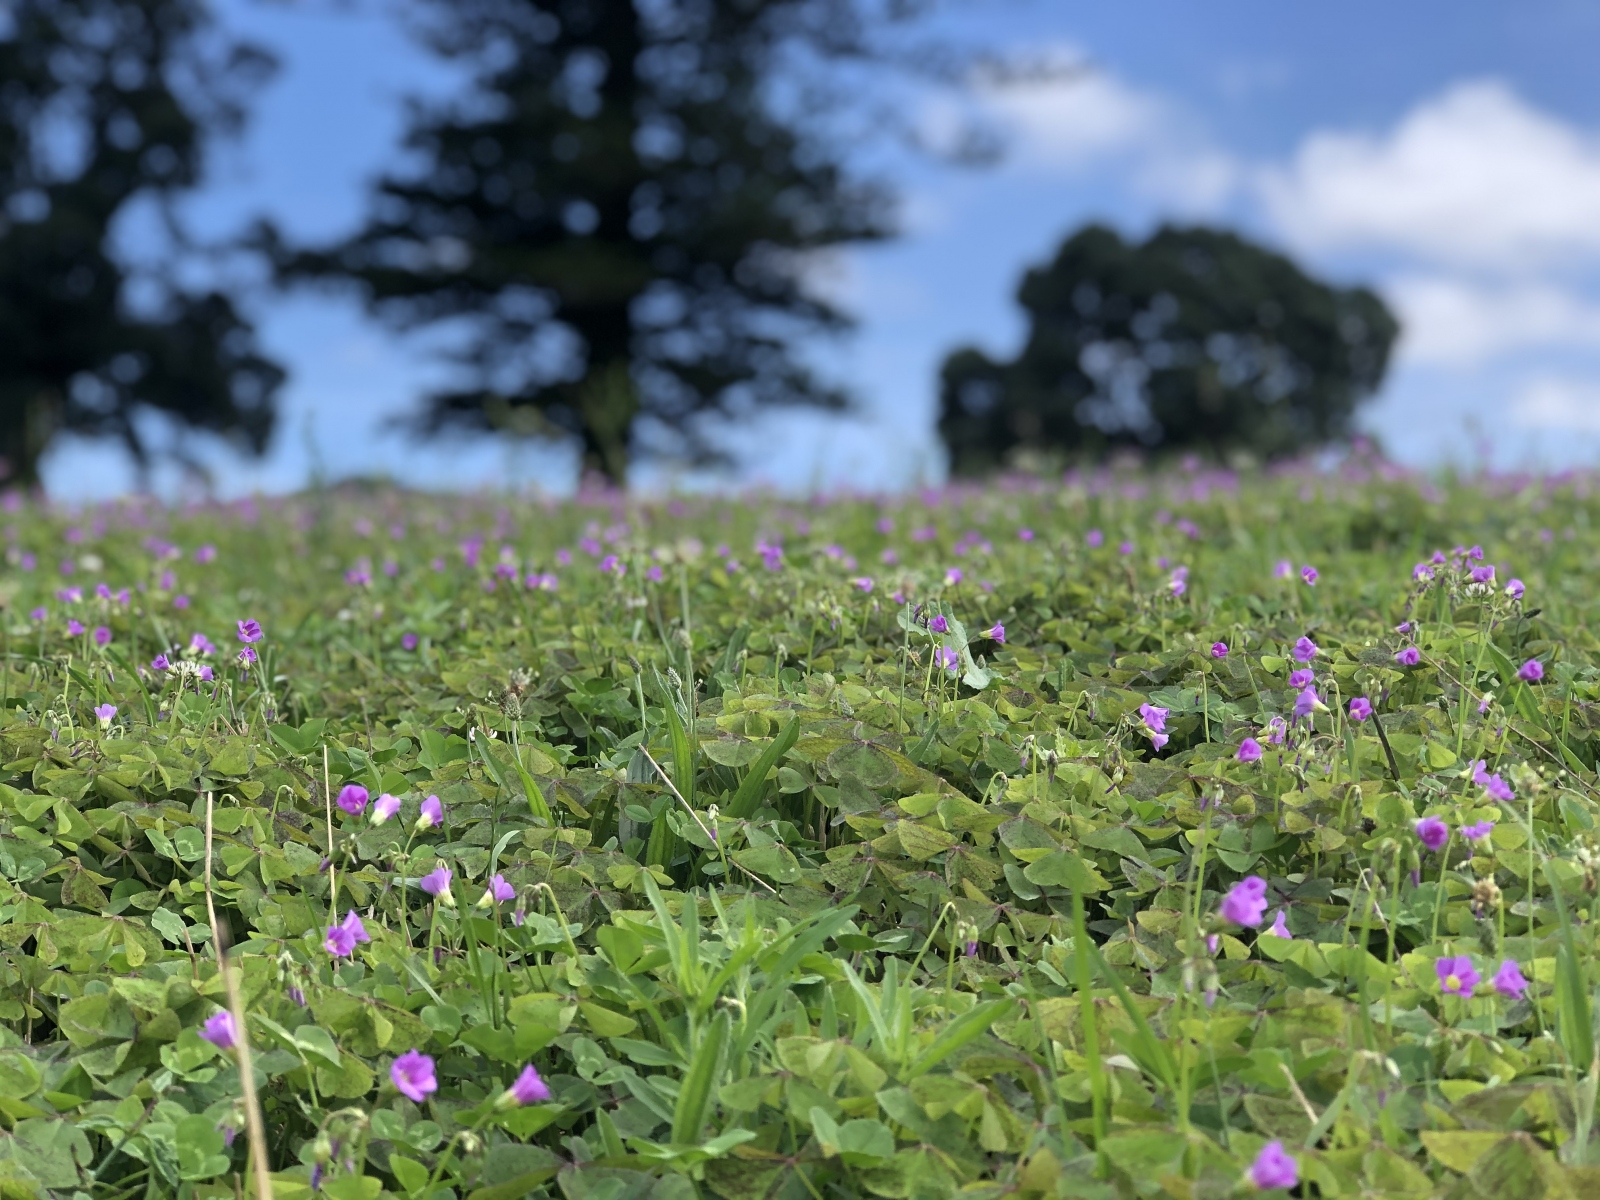 Summer brings out the clover in the field